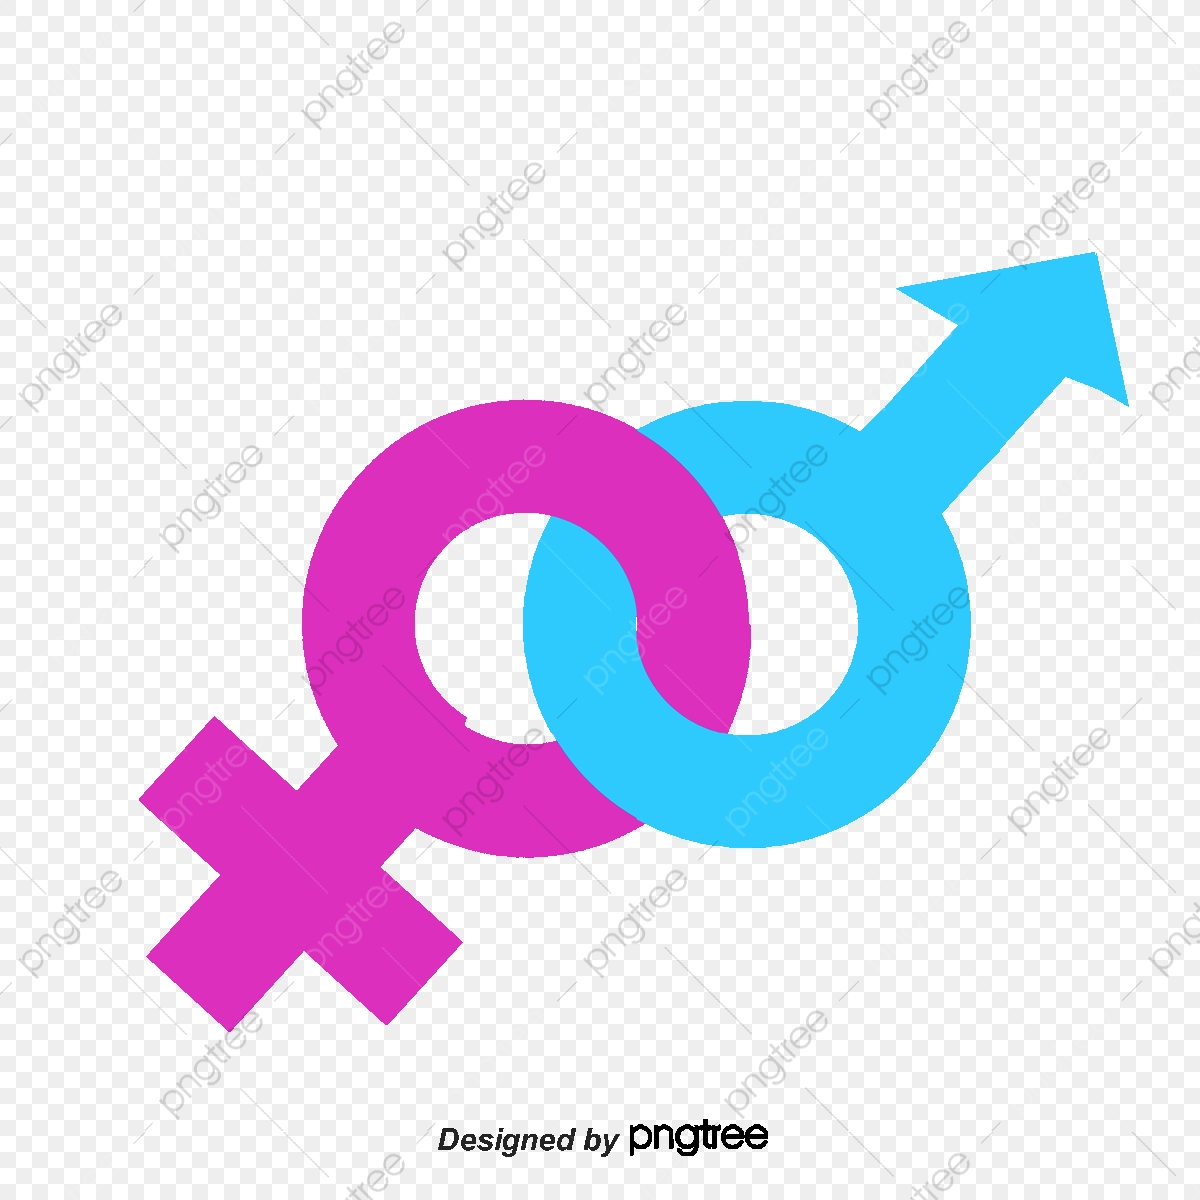 male and female symbols, female clipart, men and women, symbol png  transparent clipart image and psd file for free download  pngtree